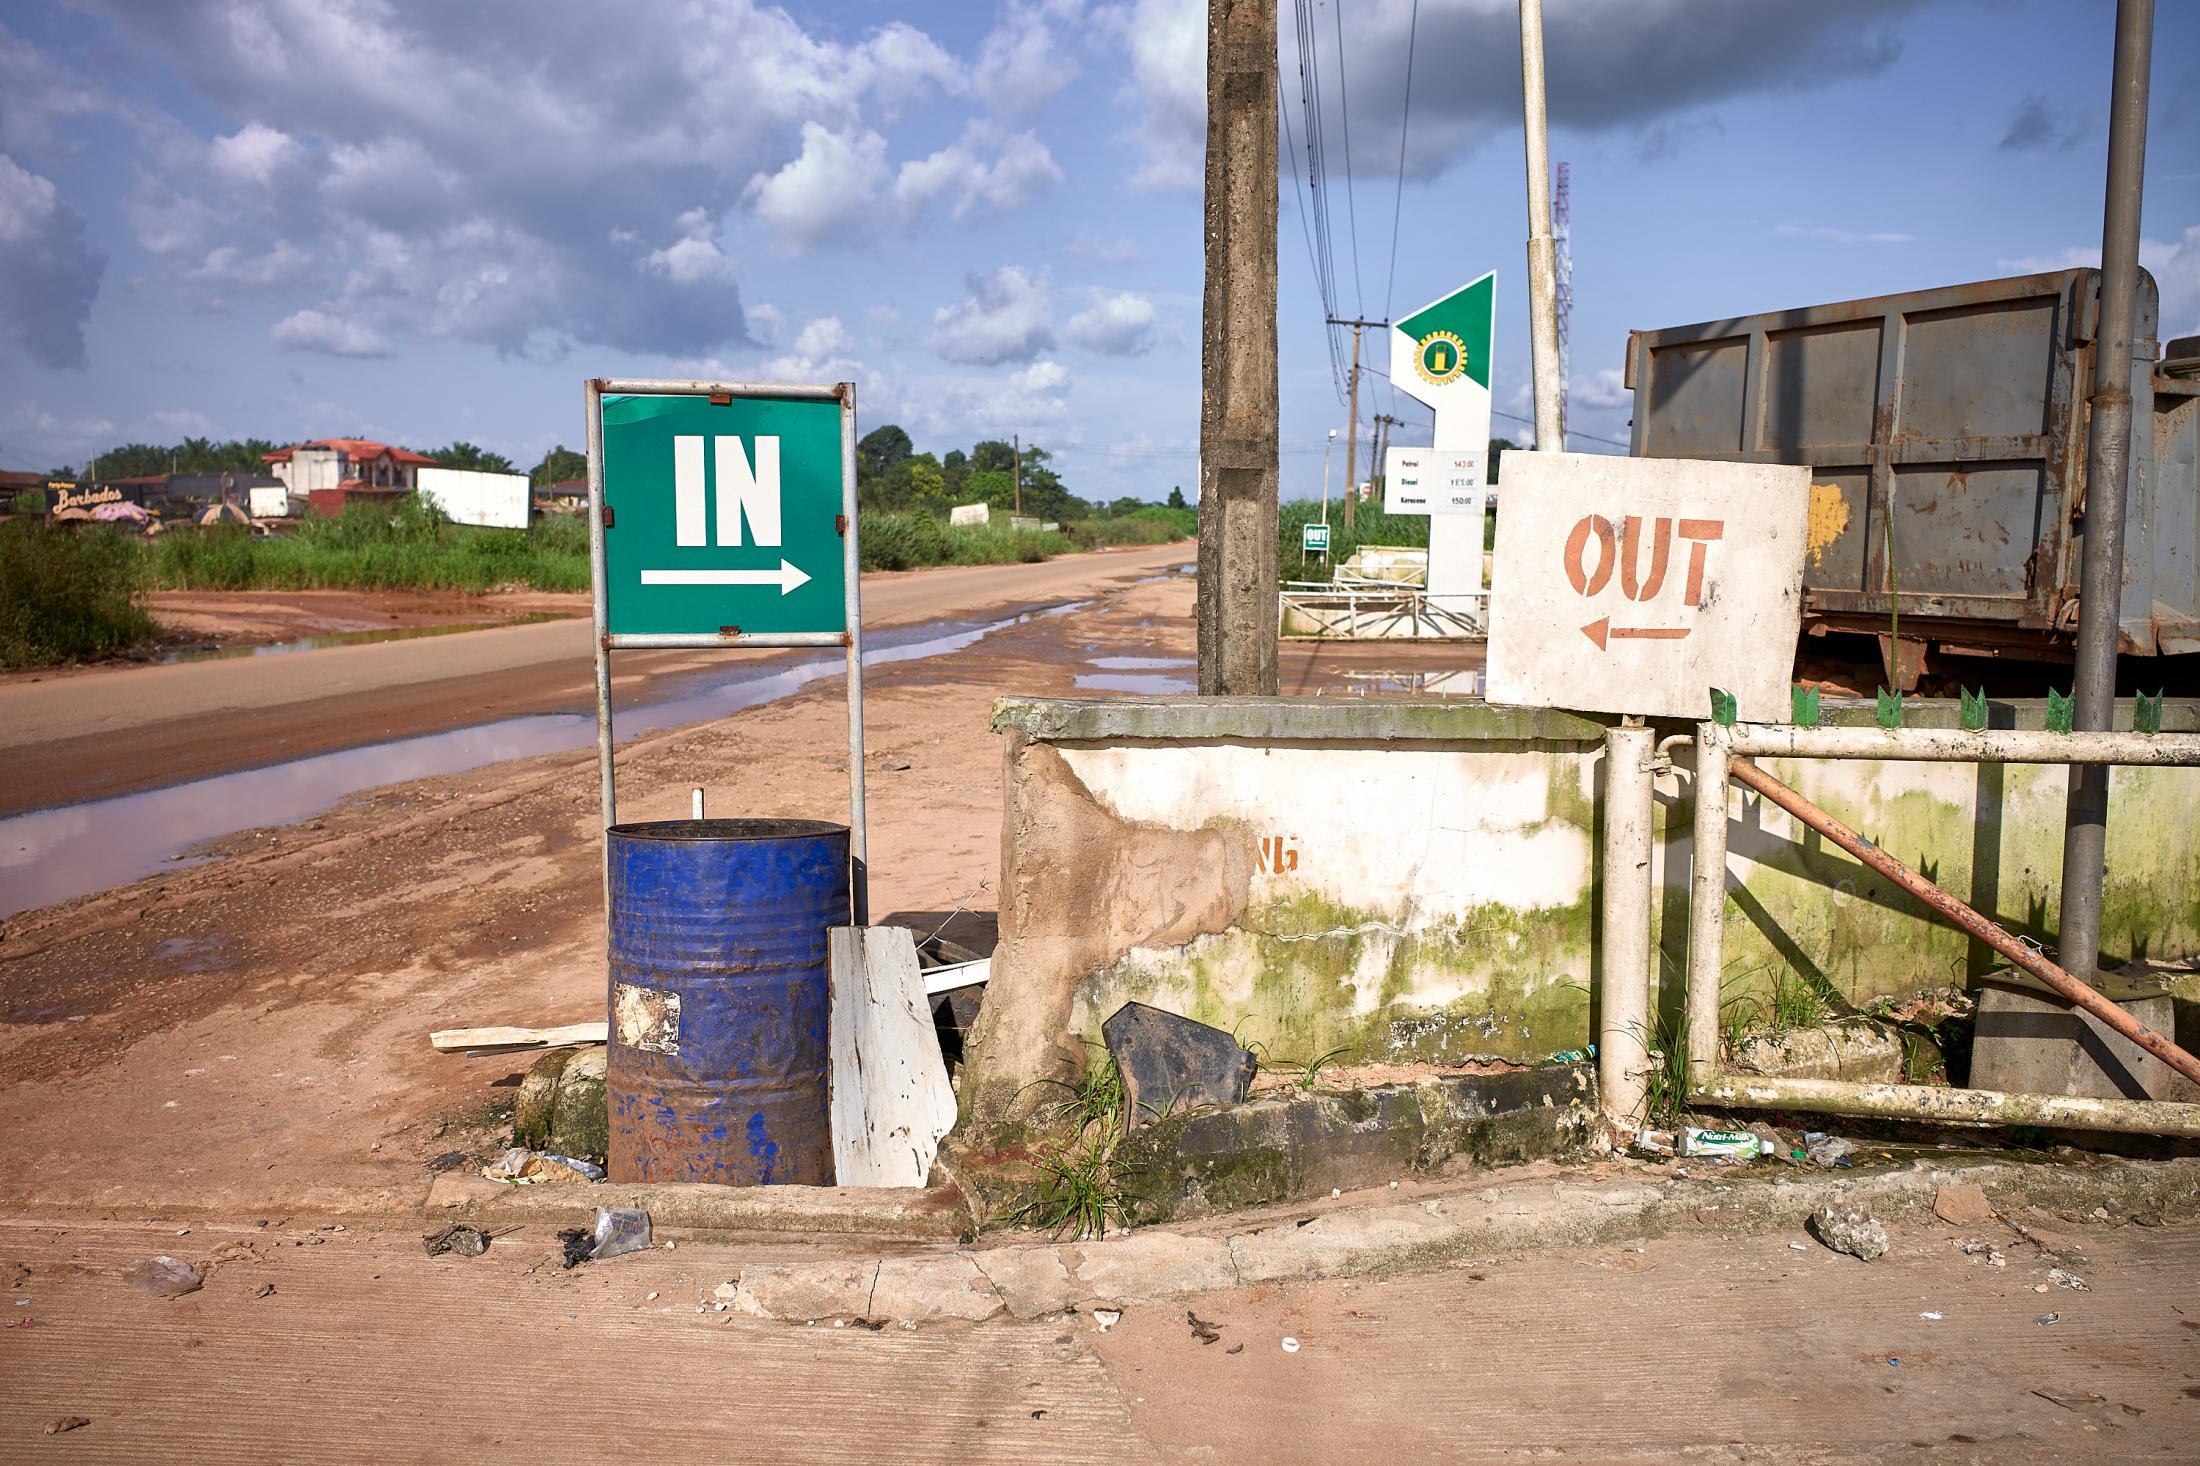 in and out, lagos-benin expressway, nigeria.